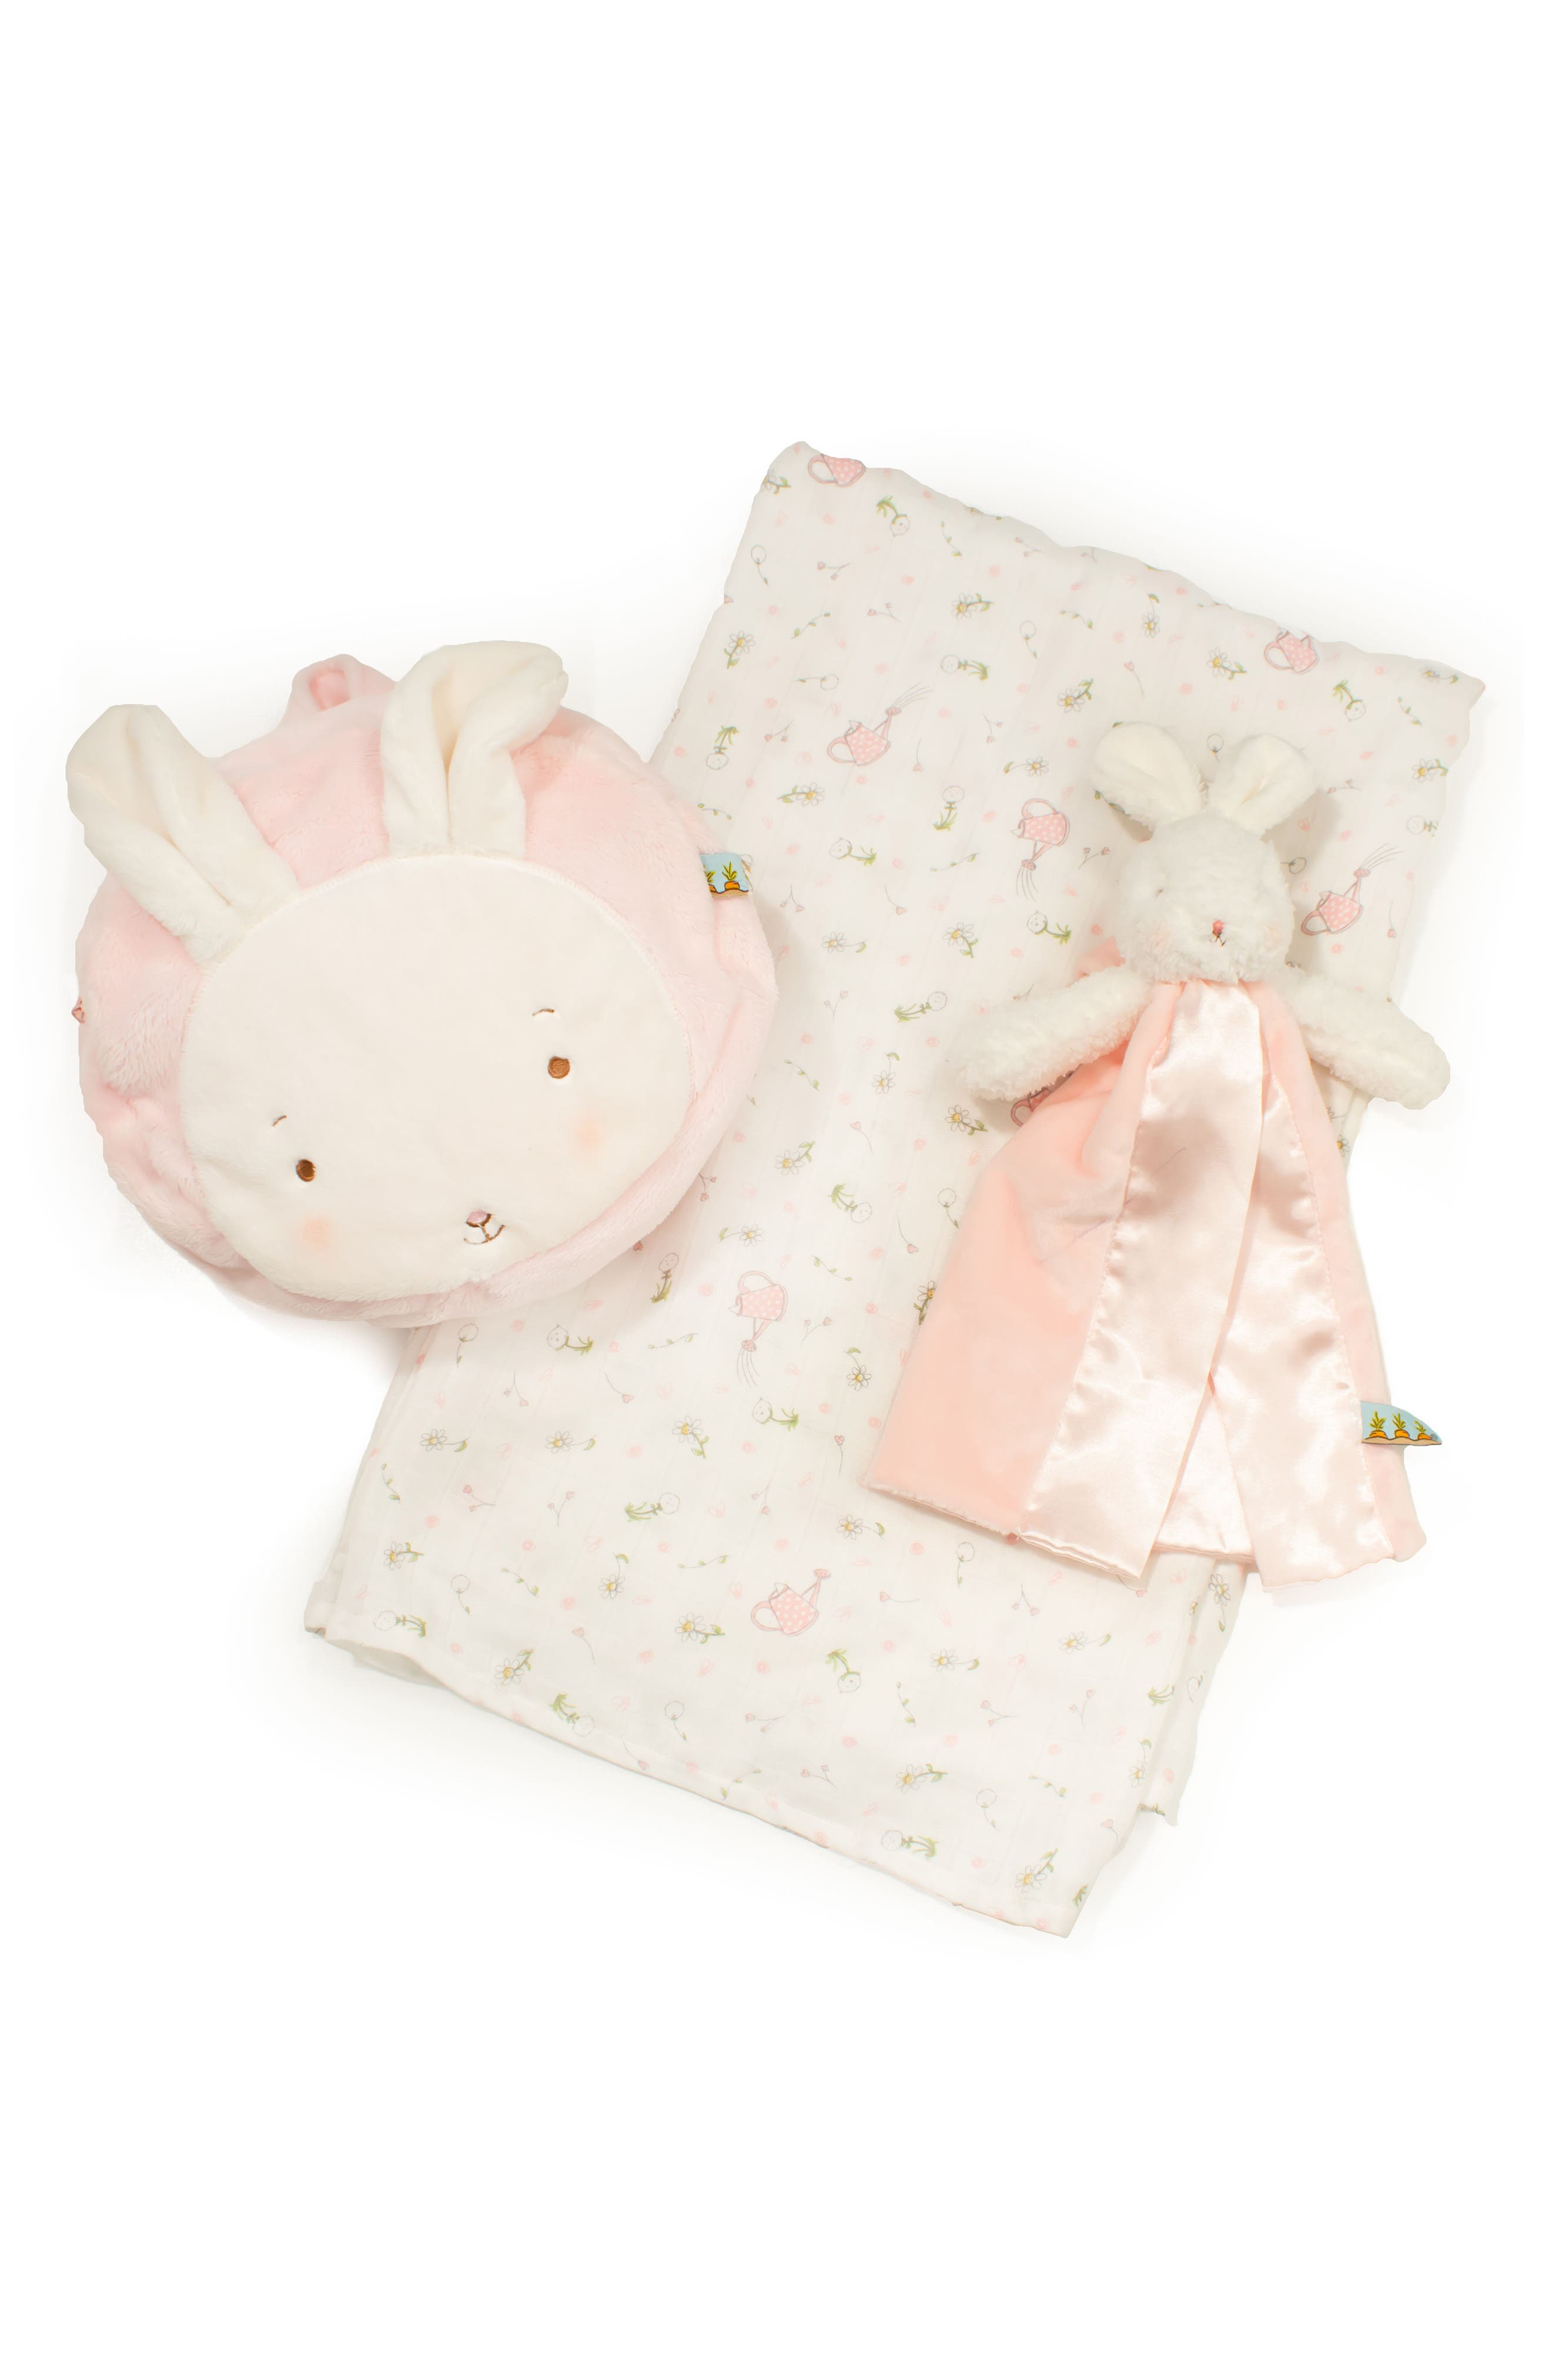 Blossom On the Go Gift Set,                             Main thumbnail 1, color,                             BLOSSOM PINK